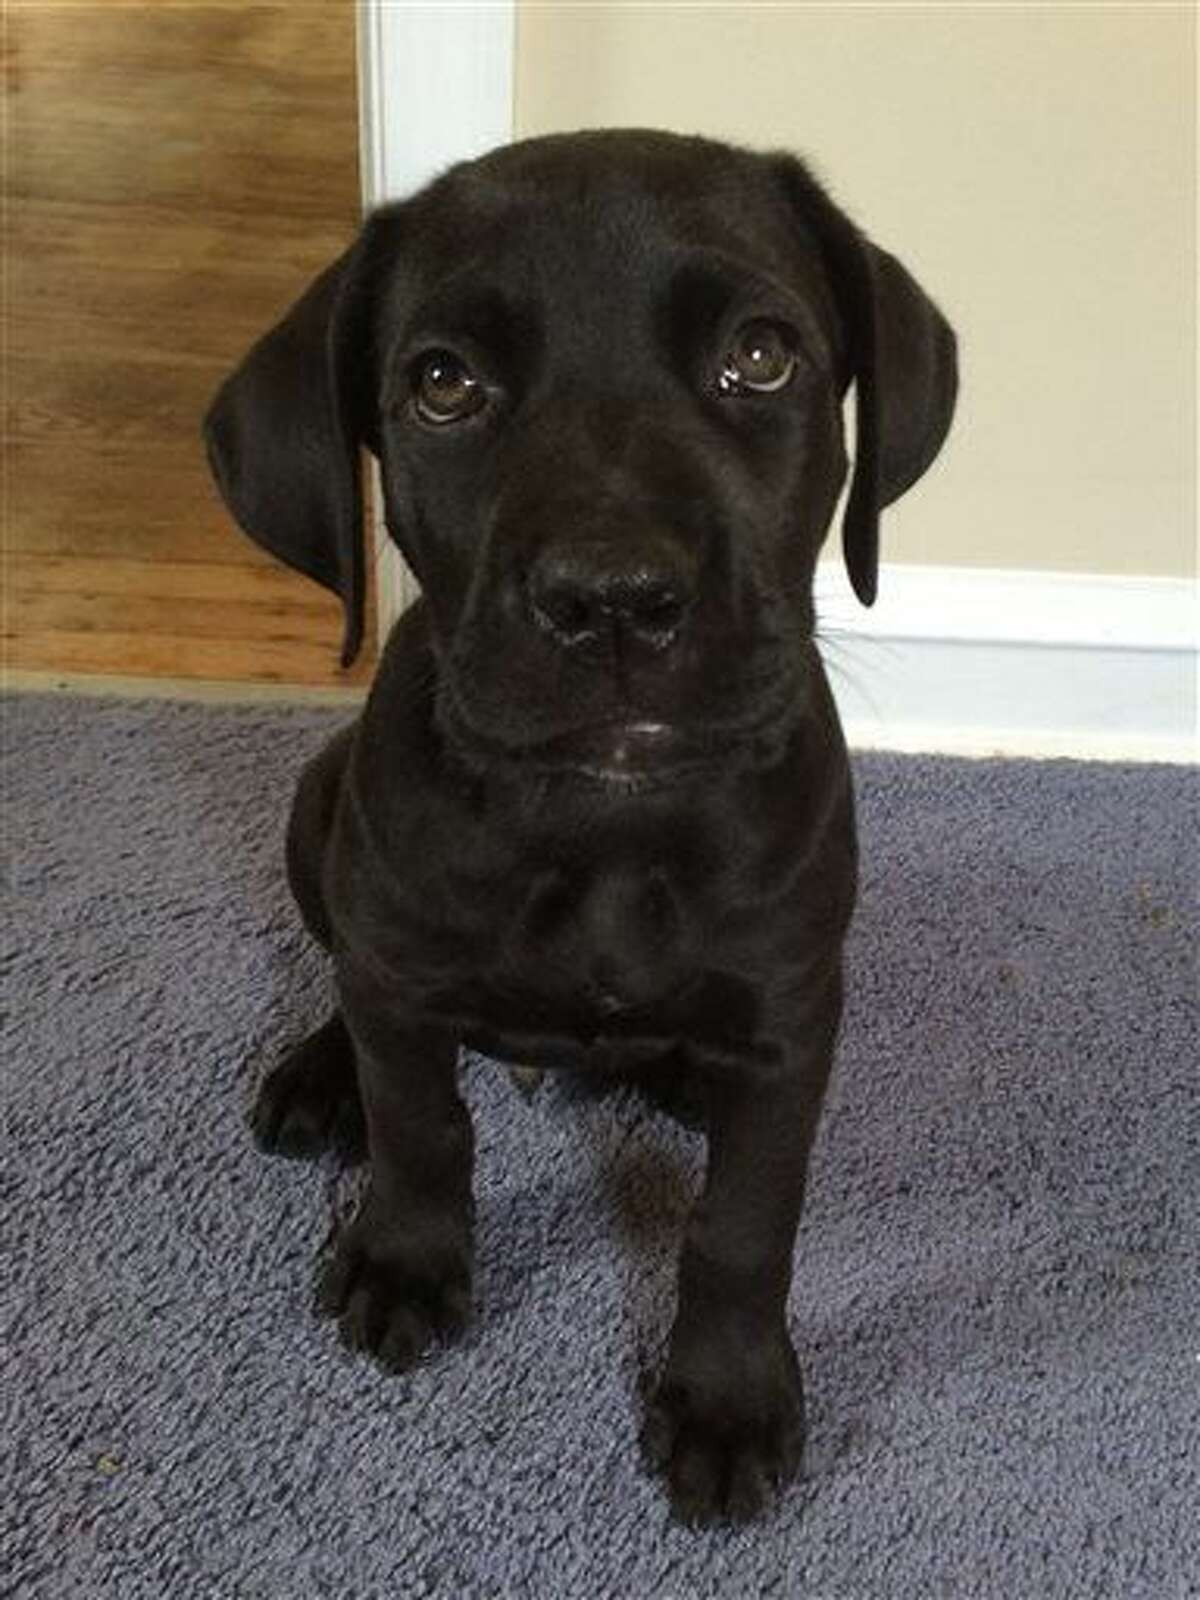 This photo provided by Michael Ehrlich shows his 6-month-old Cane Coro named Jasper at home in Philadelphia. The puppy swallowed two large plastic balls, which remained lodged in his stomach probably for a few weeks, according to Ehrlich. They were surgically retrieved on Saturday, Dec. 26, 2015, and within a few days Jasper was already back on his feet. (Michael Ehrlich via AP)